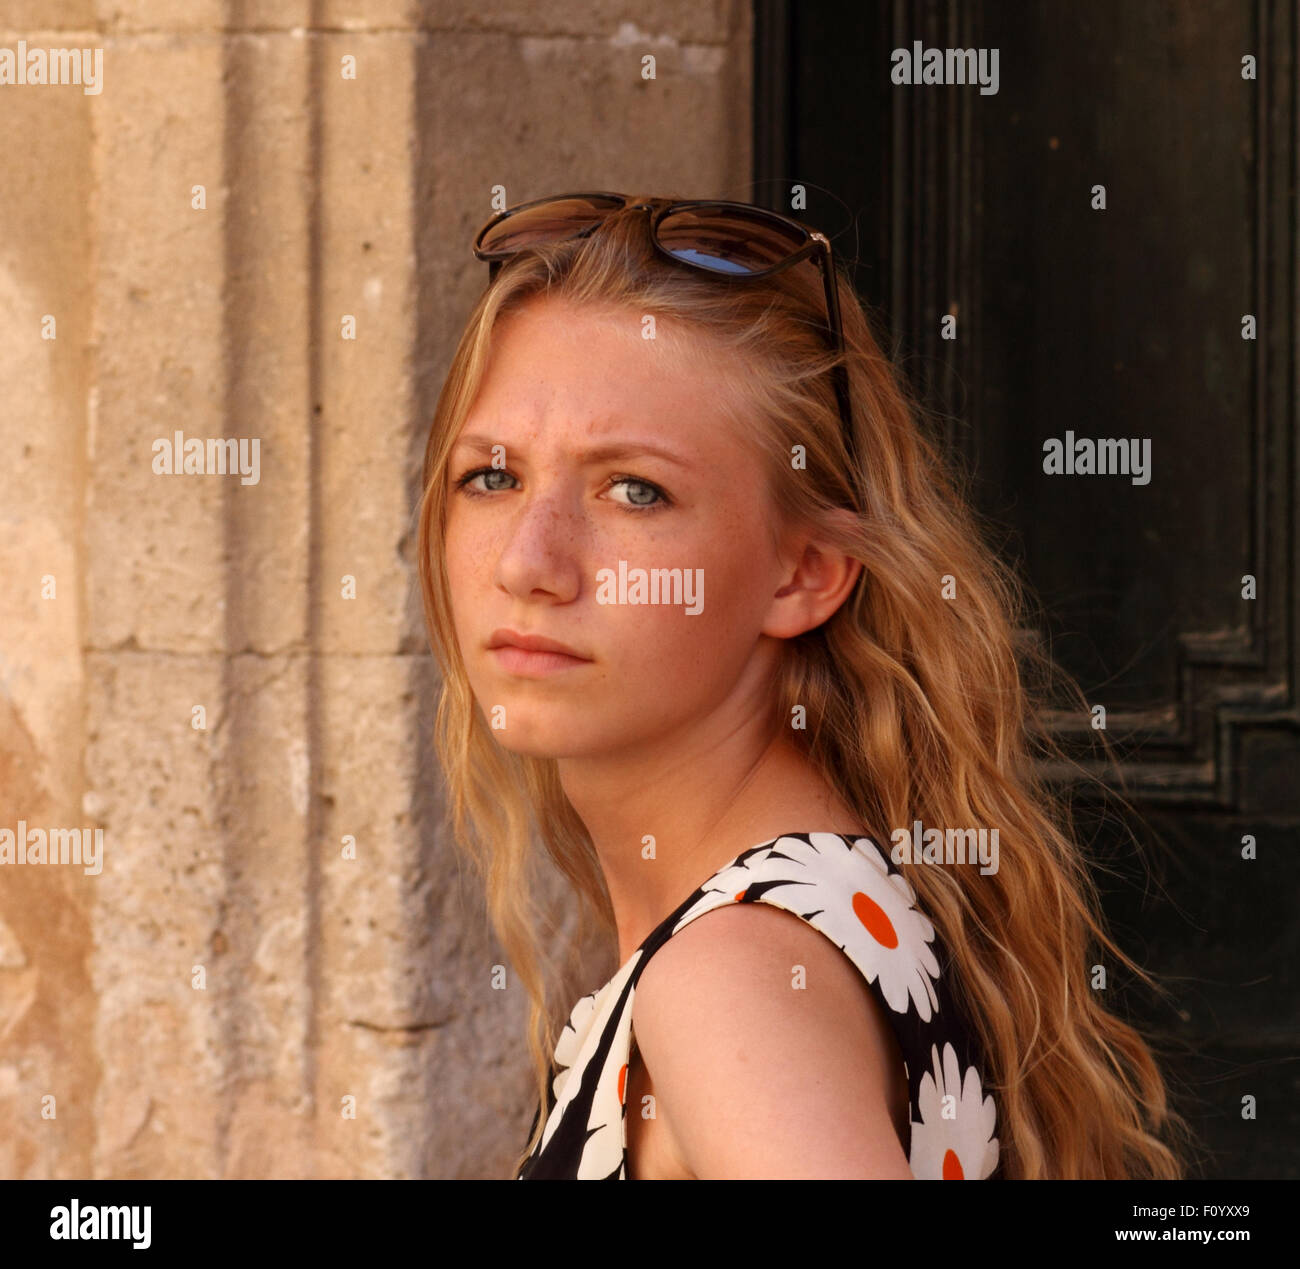 stunning young blonde girl with sunglasses on her head pale complexion. - Stock Image